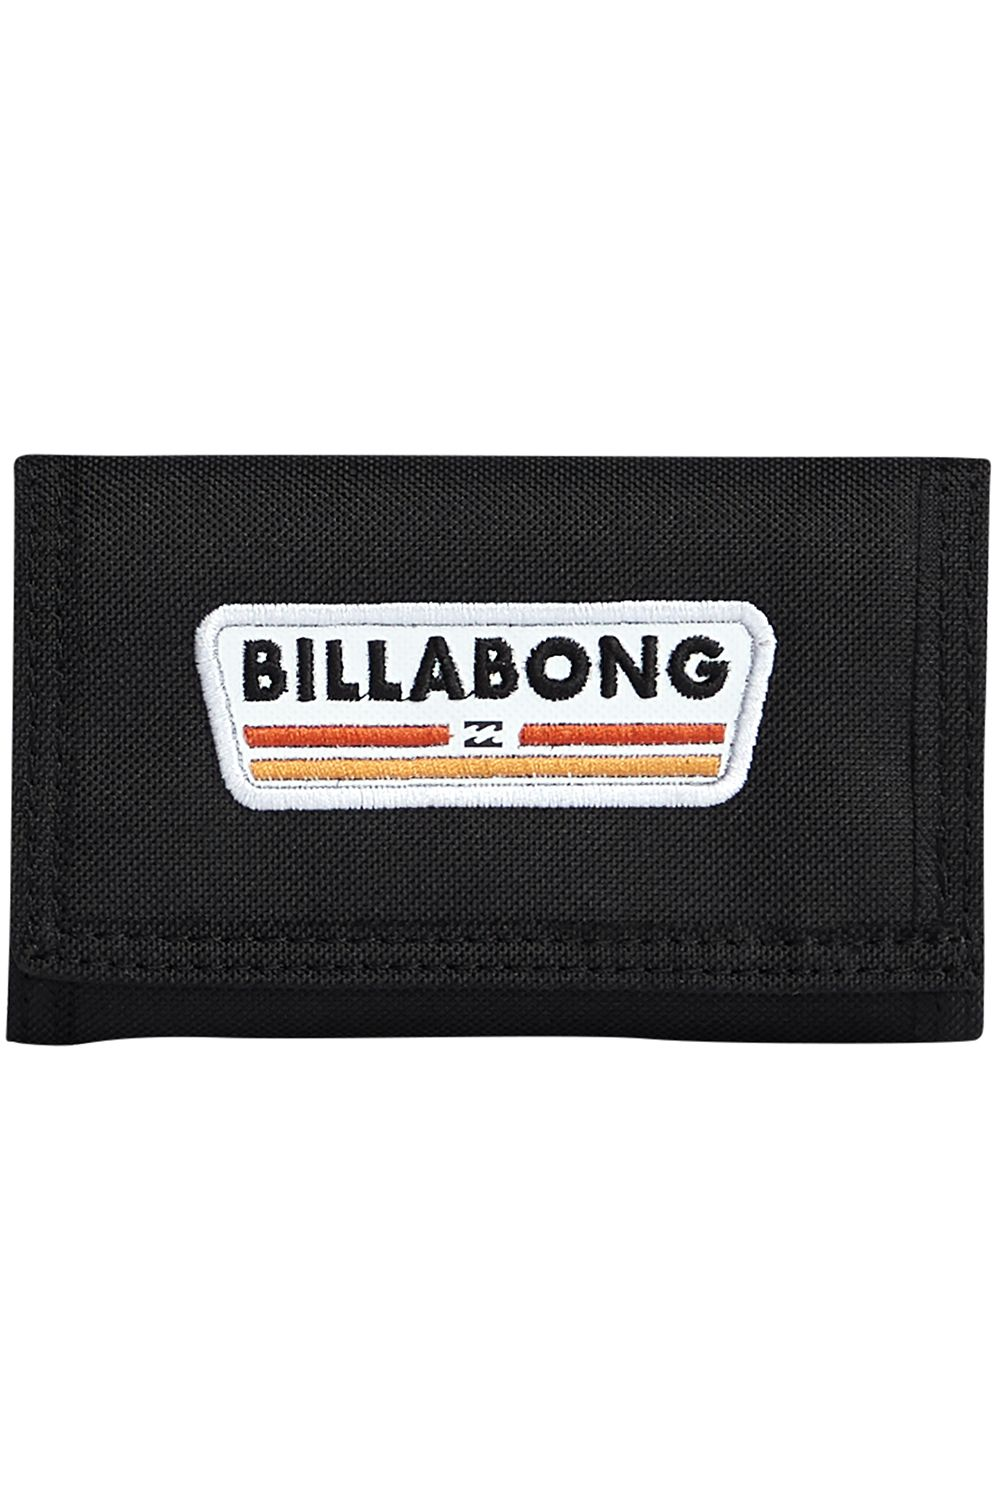 Carteira Billabong WALLED 600D Black